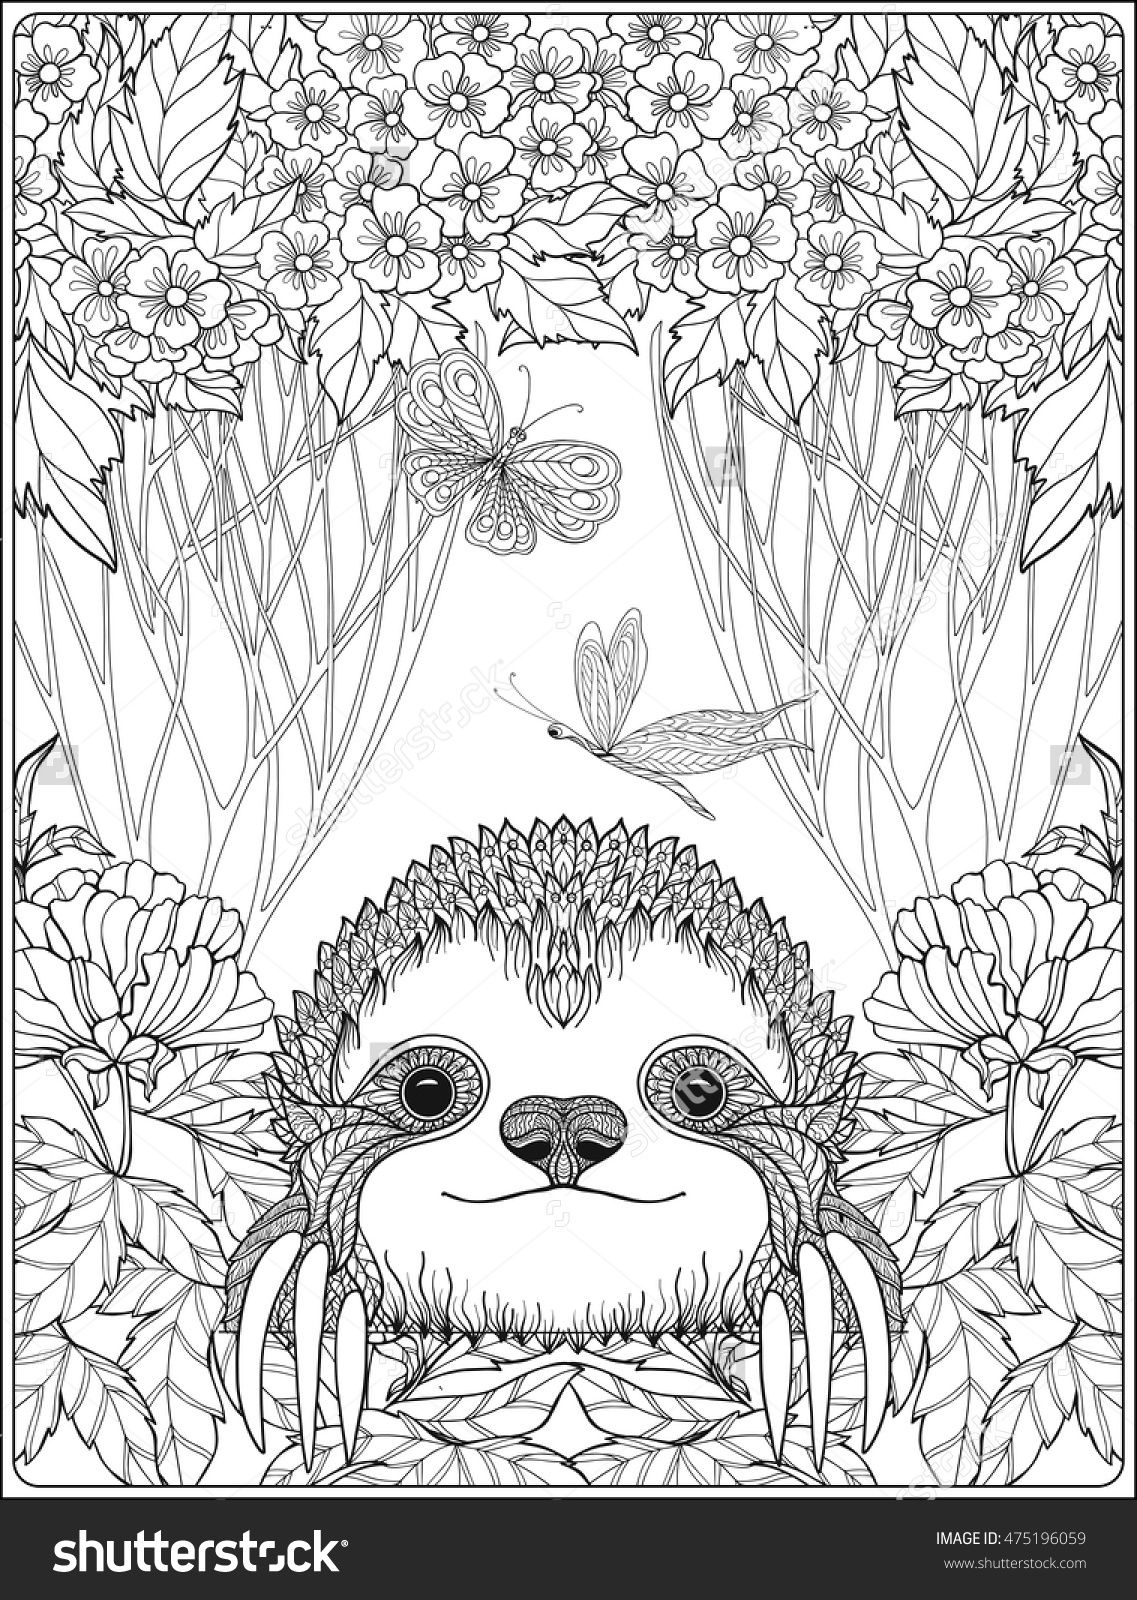 sloth pictures to print sloth coloring pages for kids free printable coloring to print sloth pictures